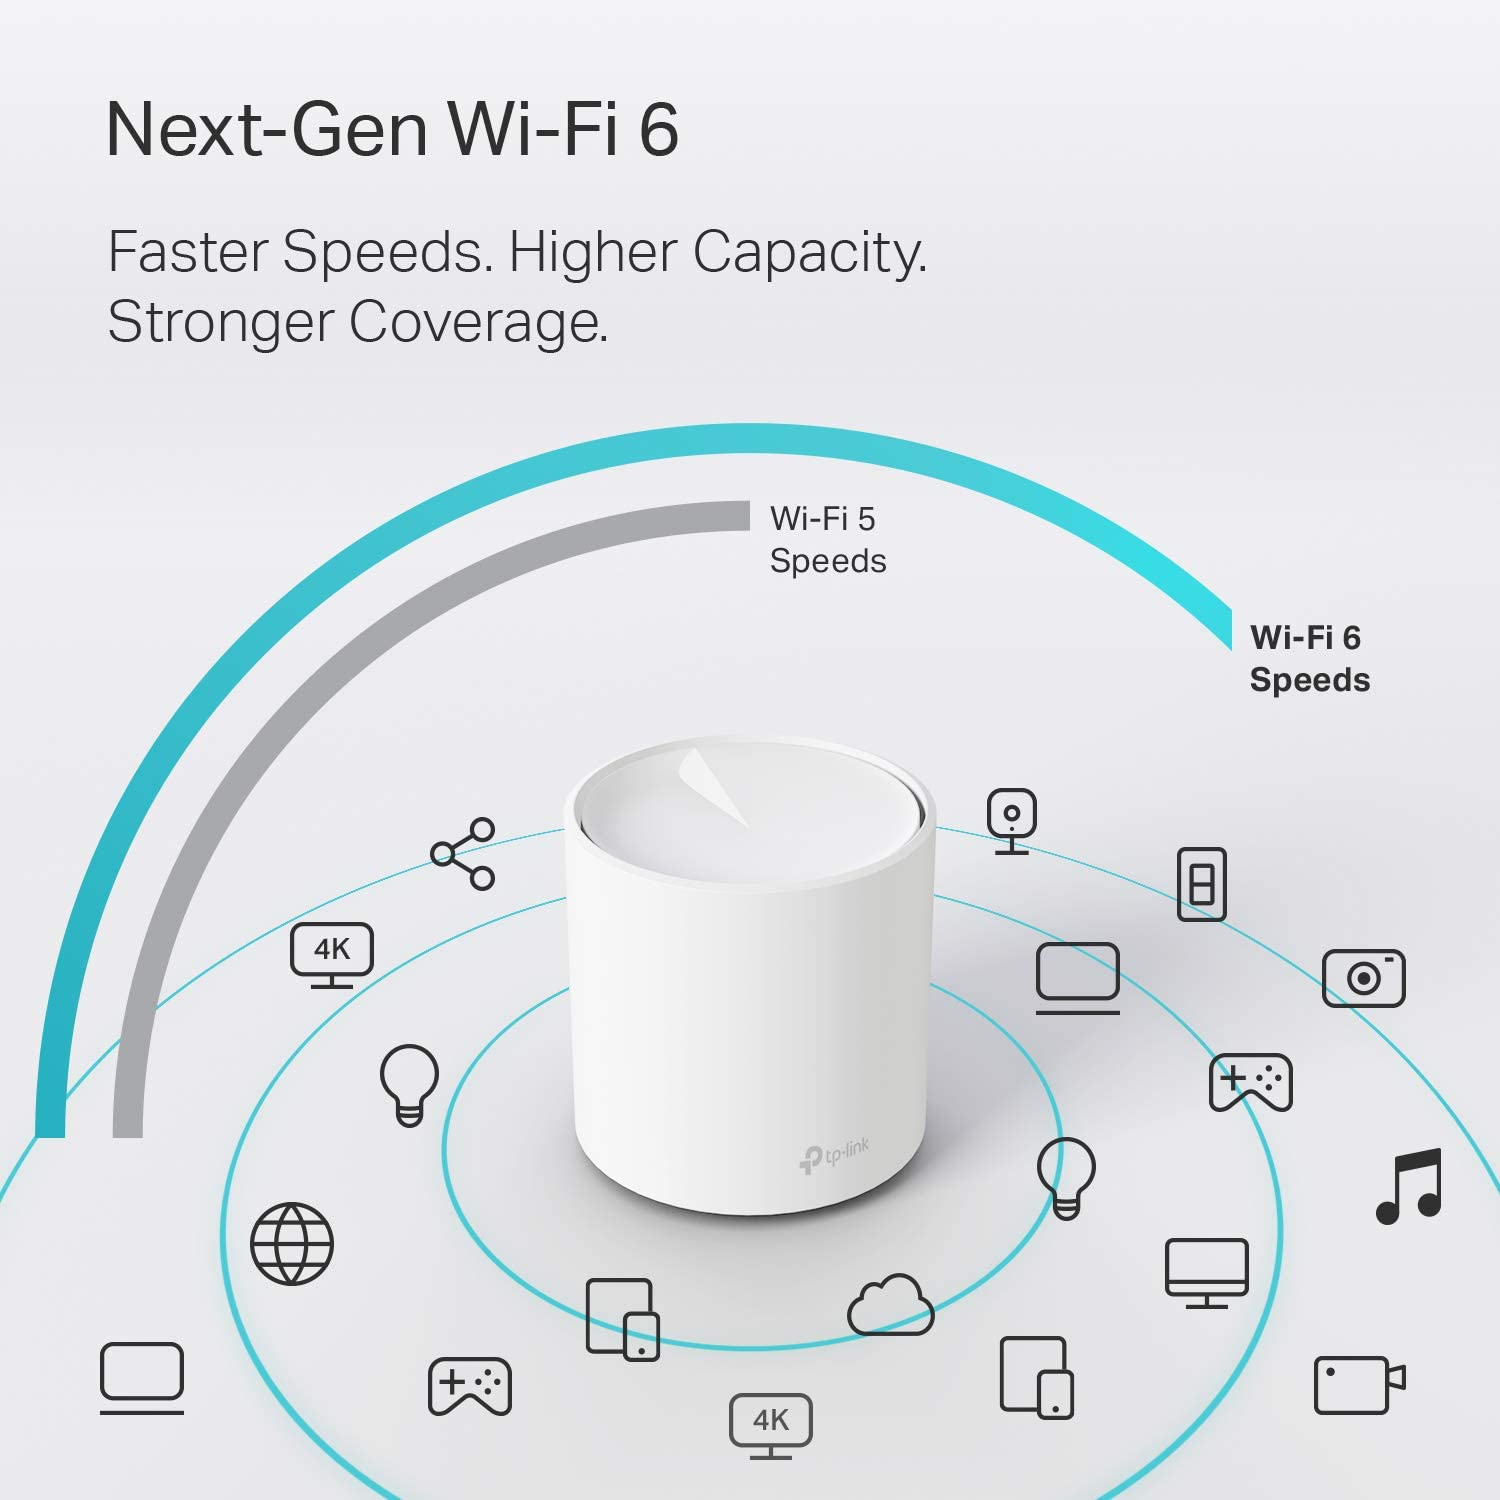 Seamless Roaming ft Parental Controls//Anitivirus Deco M5 3-Pack TP-Link Deco Mesh WiFi System Whole Home Coverage and 100+ Devices,WiFi Router//Extender Replacement Up to 5,500 sq